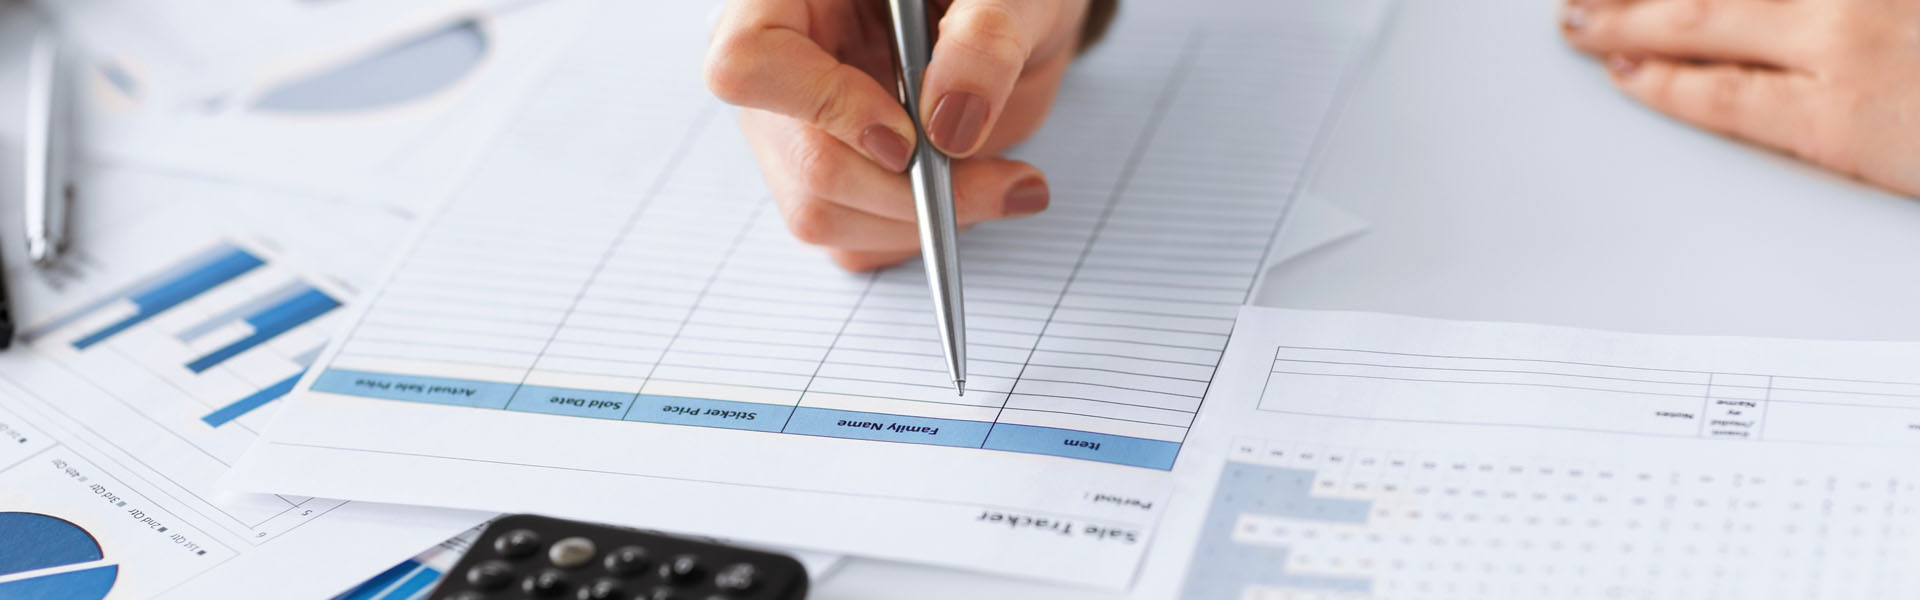 Accounting and Bookkeeping services image